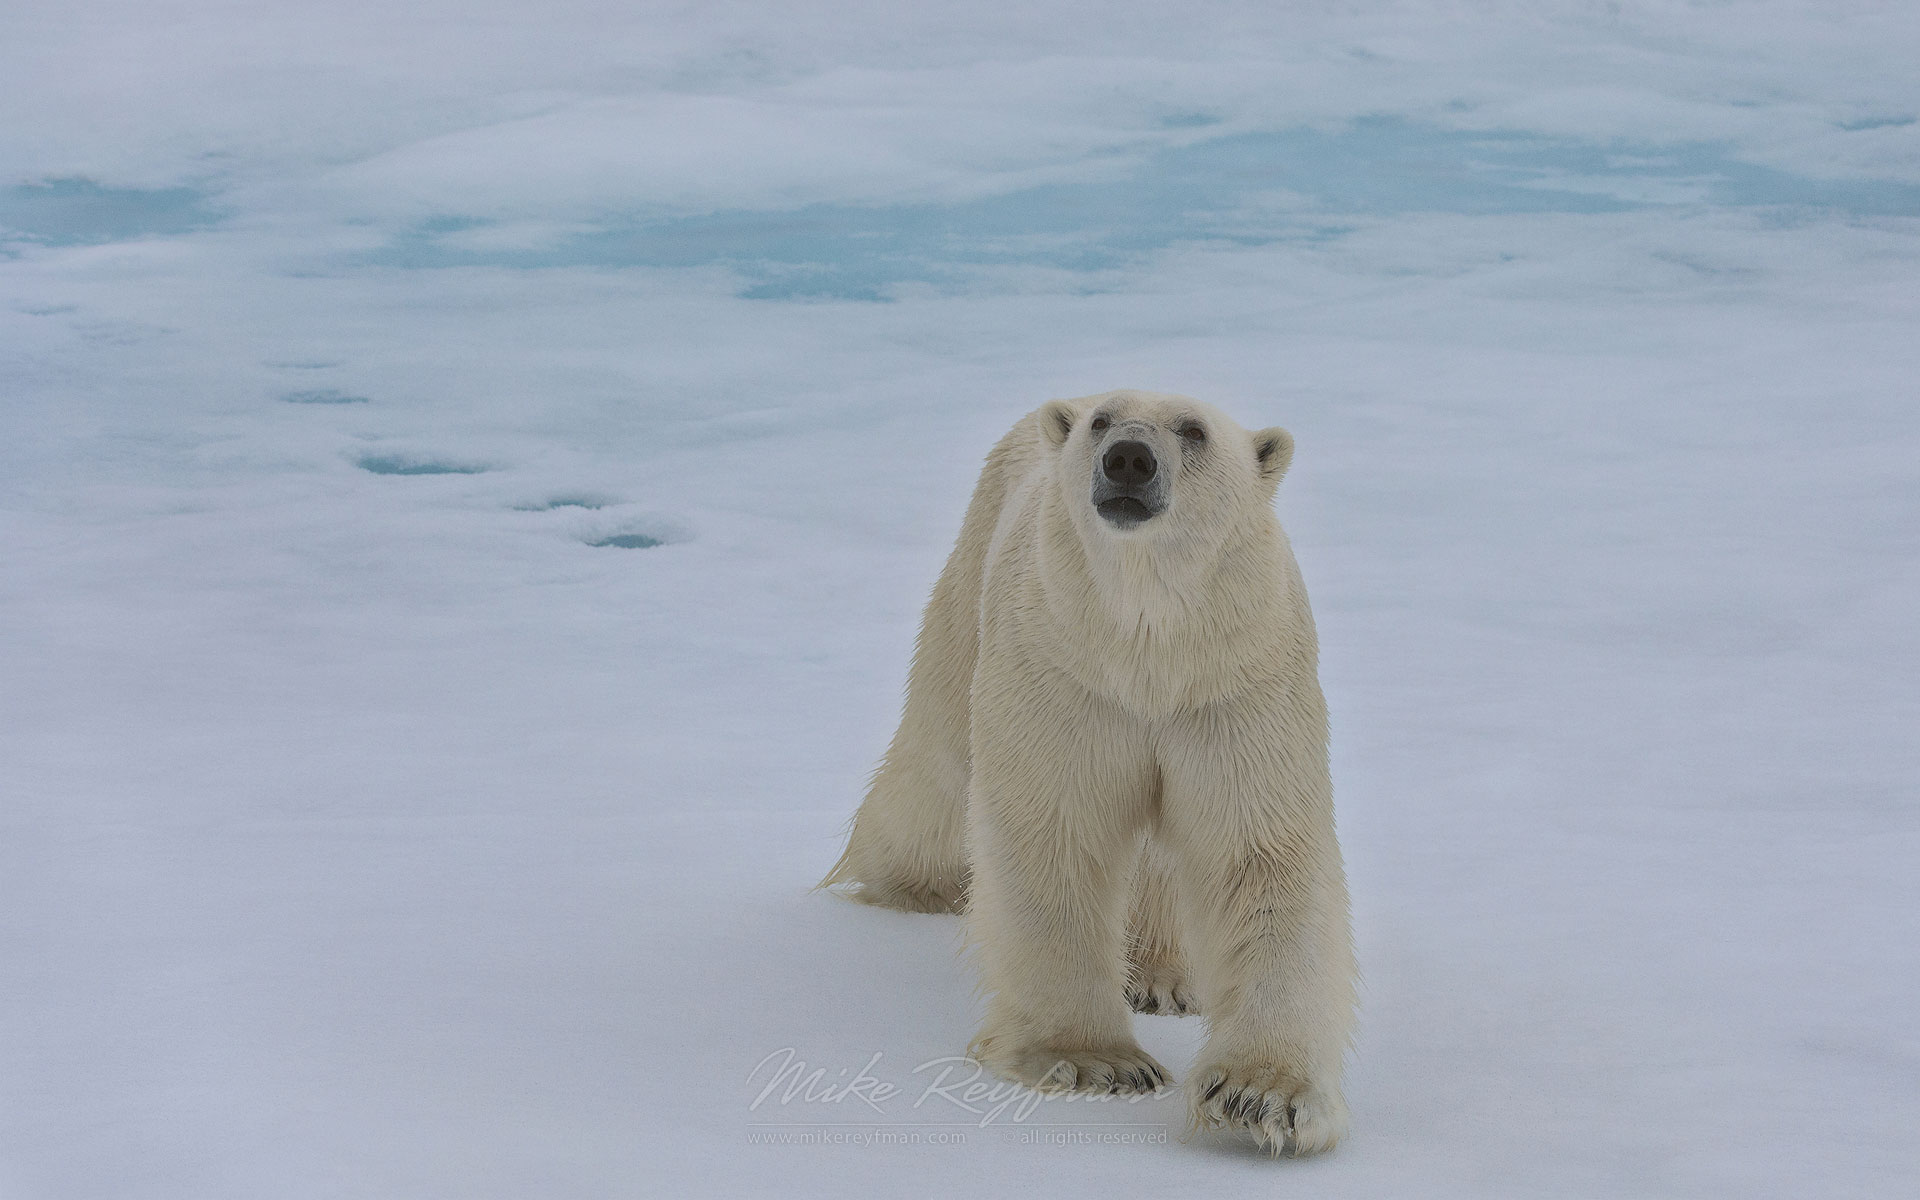 Polar bear on an ice floe in Svalbard, Norway. 81st parallel North. - Polar-Bears-Svalbard-Spitsbergen-Norway - Mike Reyfman Photography